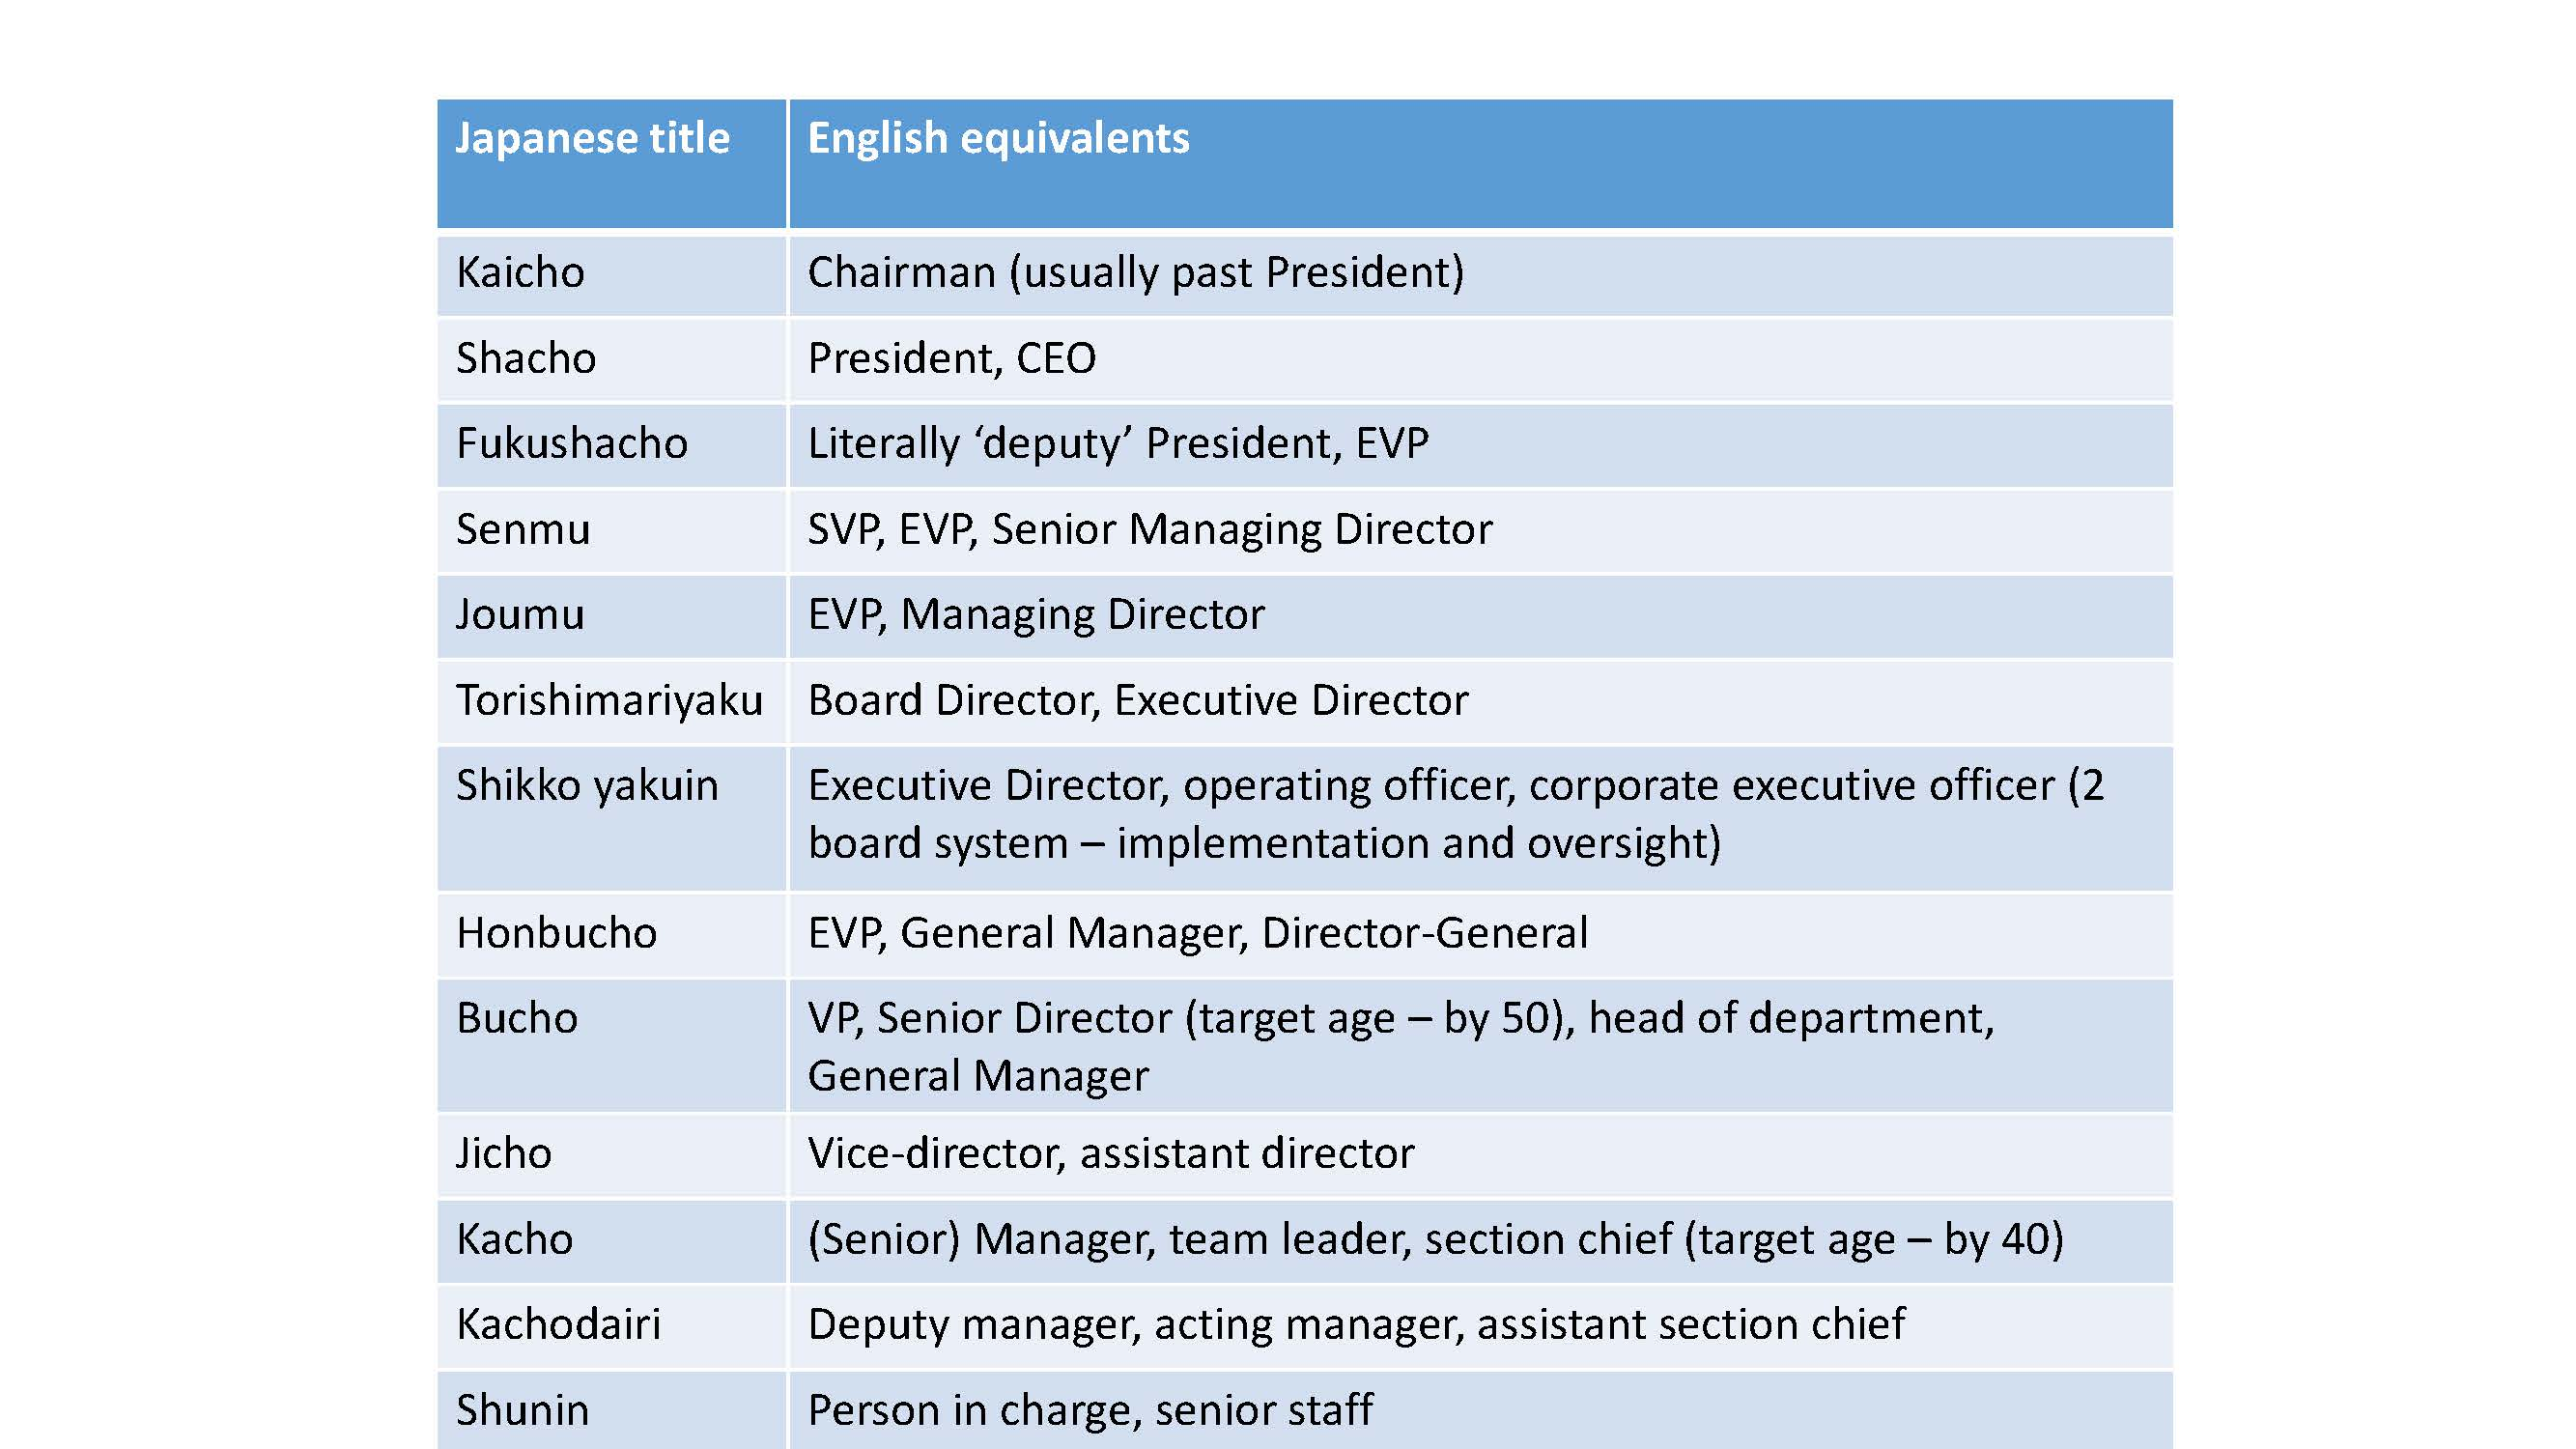 Japanese job title translations